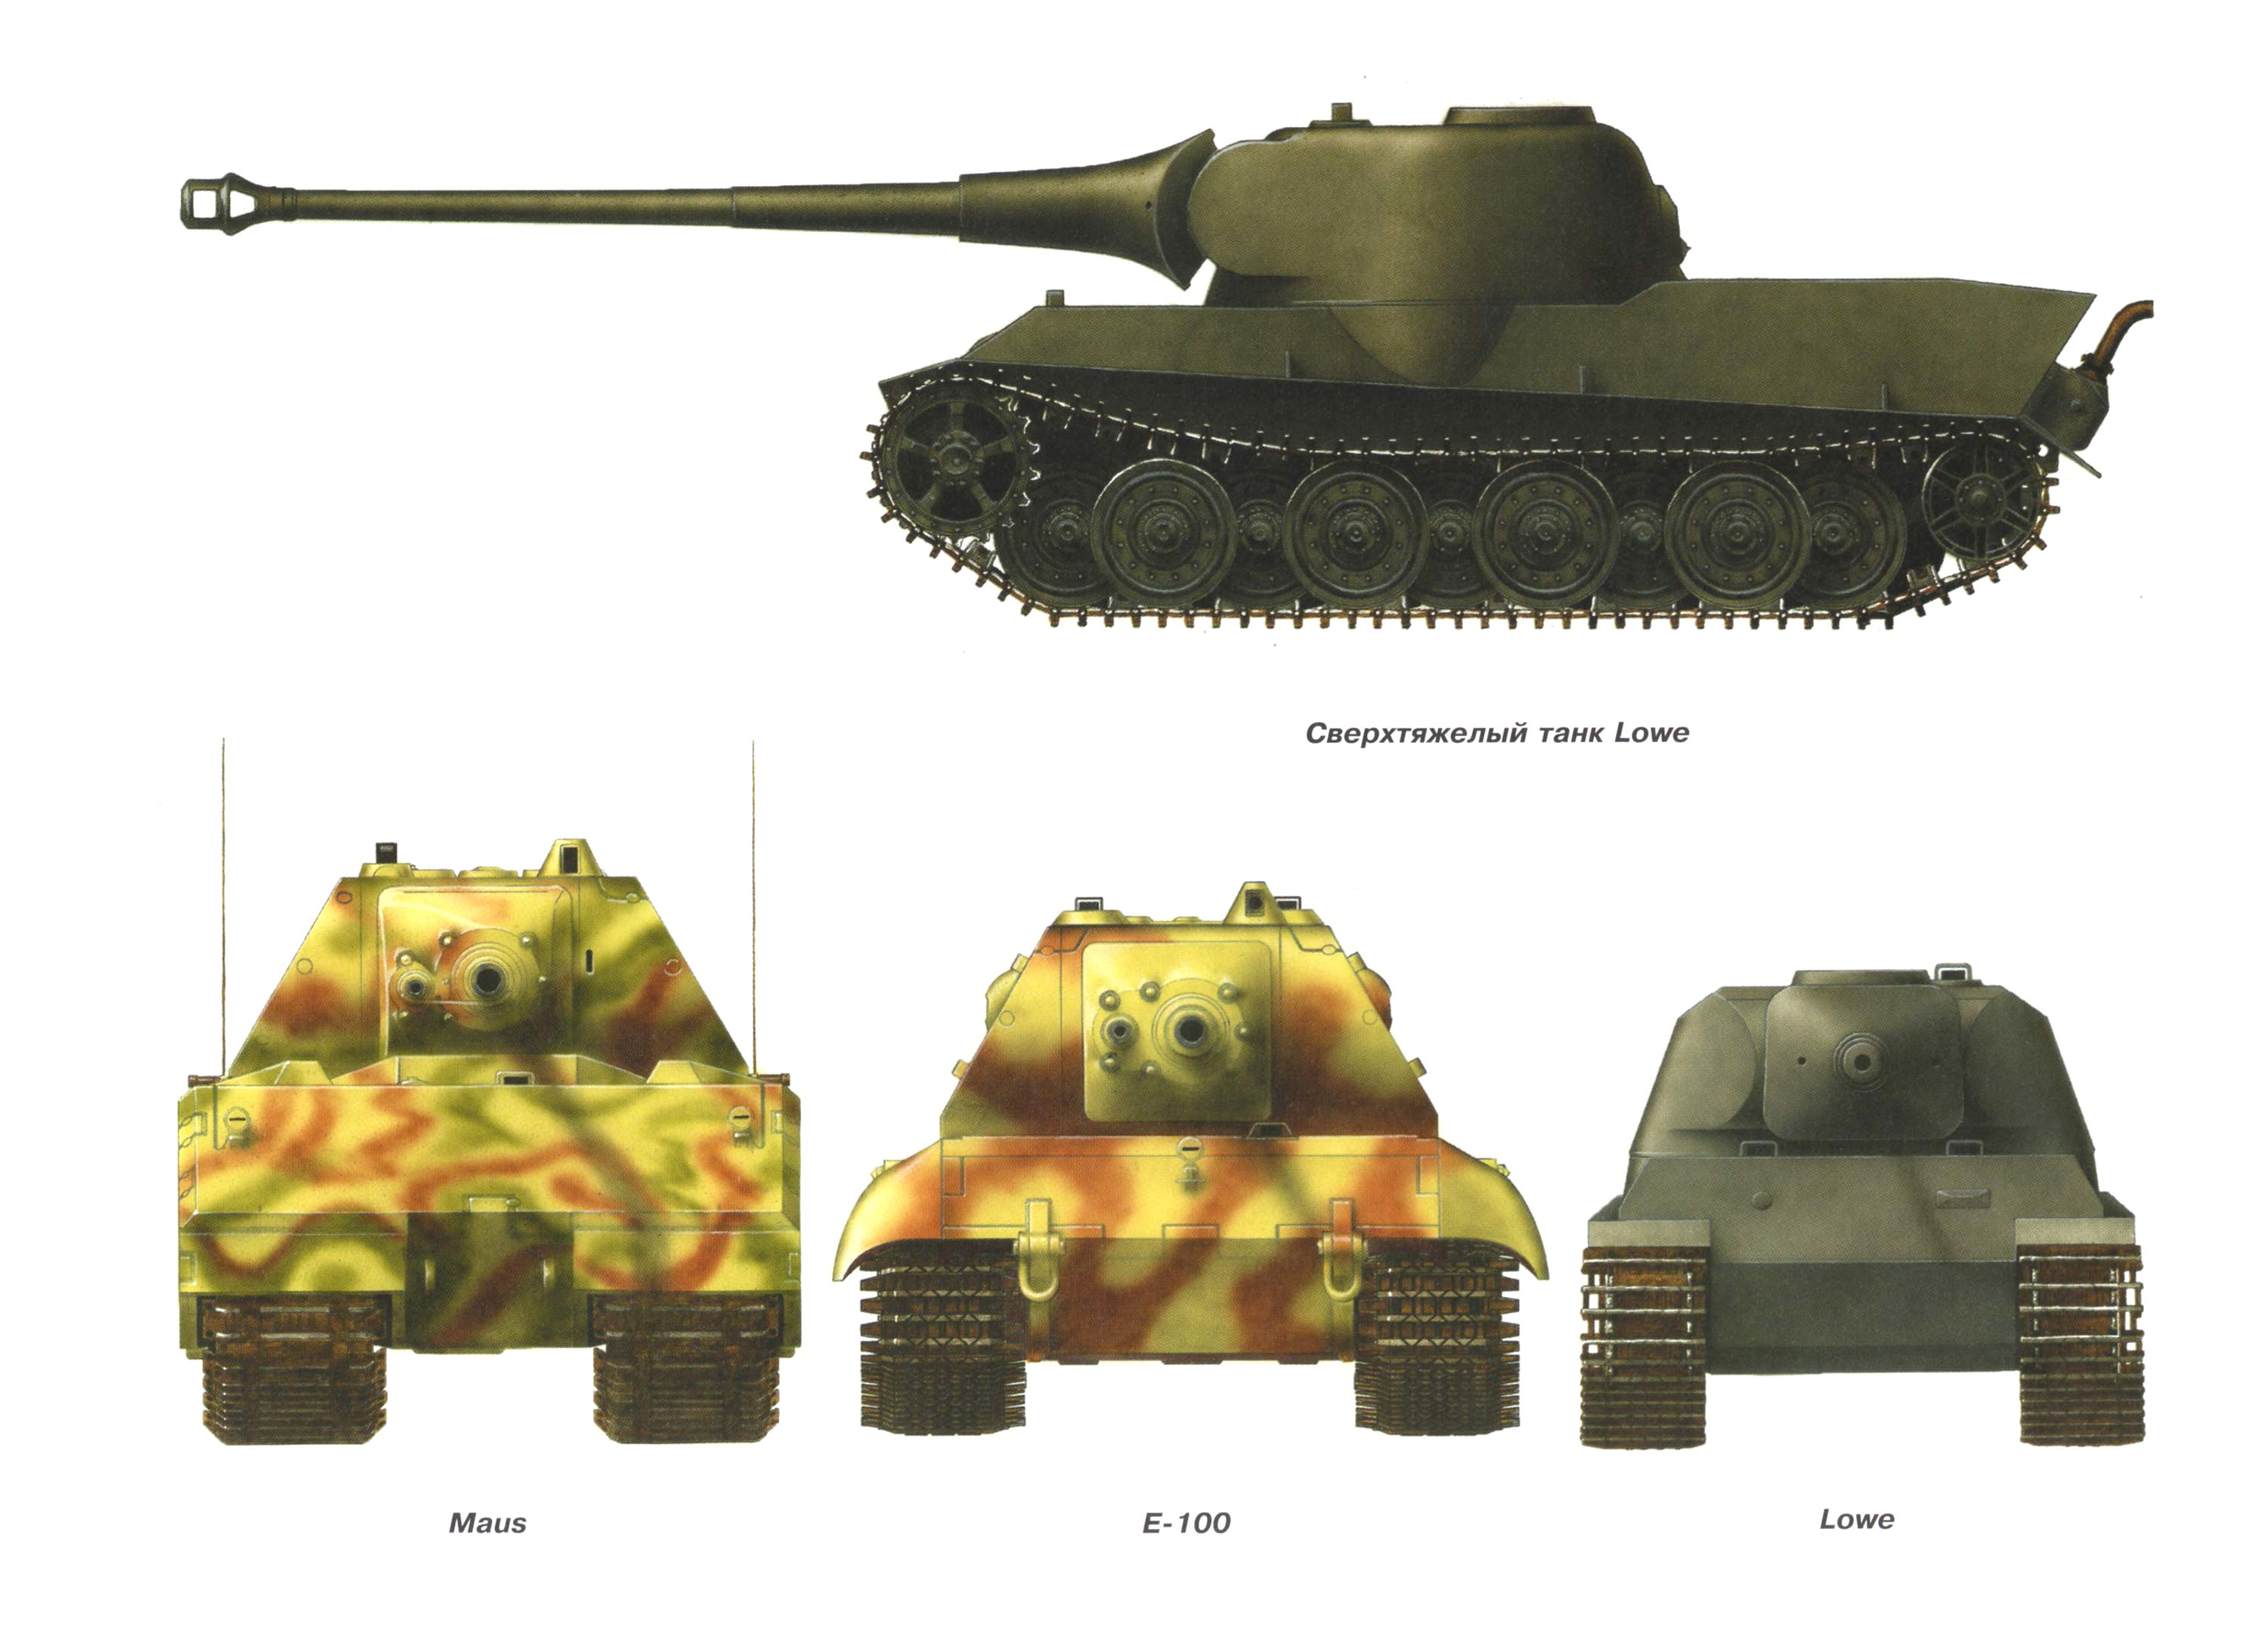 german e super heavy tank l ouml we profile against the maus and e german e100 super heavy tank loumlwe profile against the maus and e 100